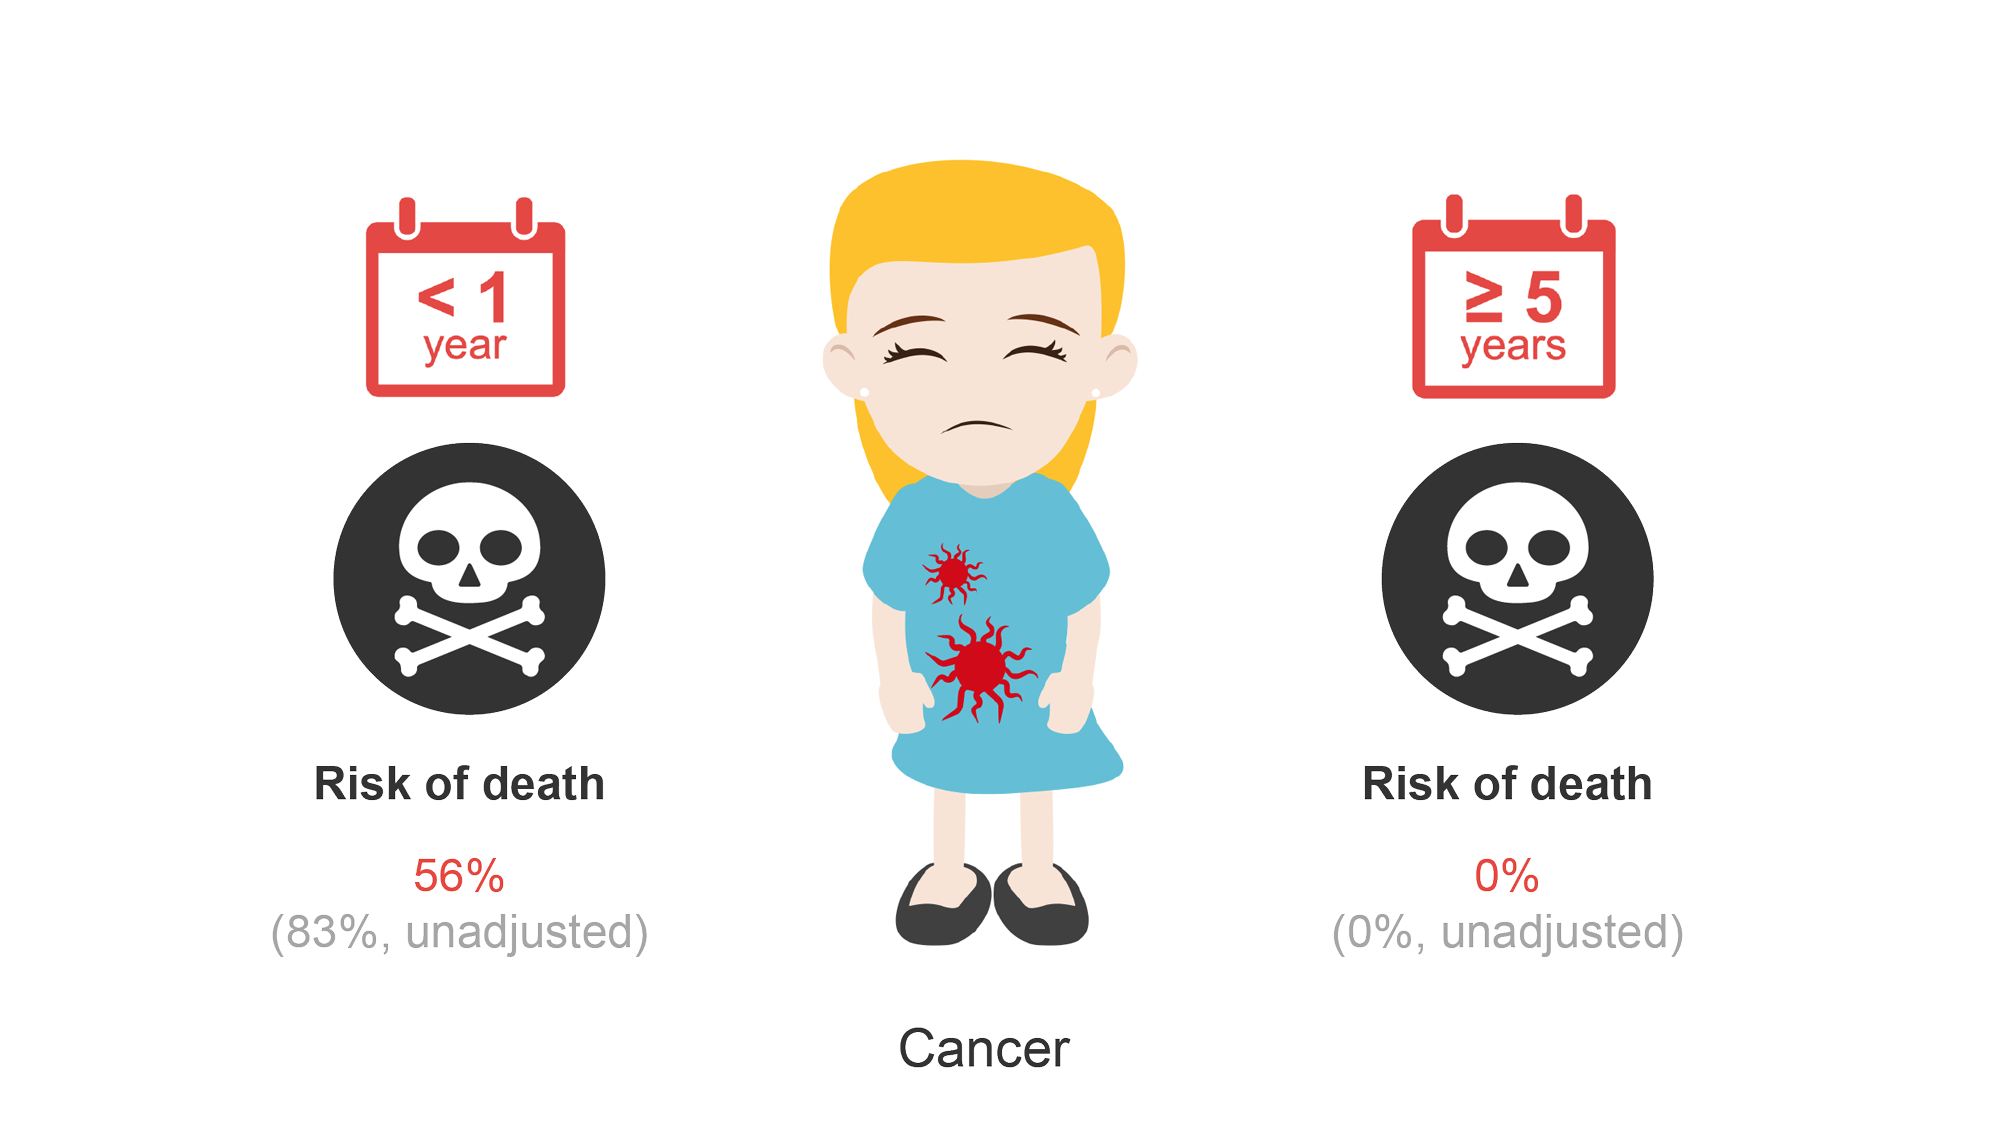 Female patient with cancer and risk of death (56%). Cartoon